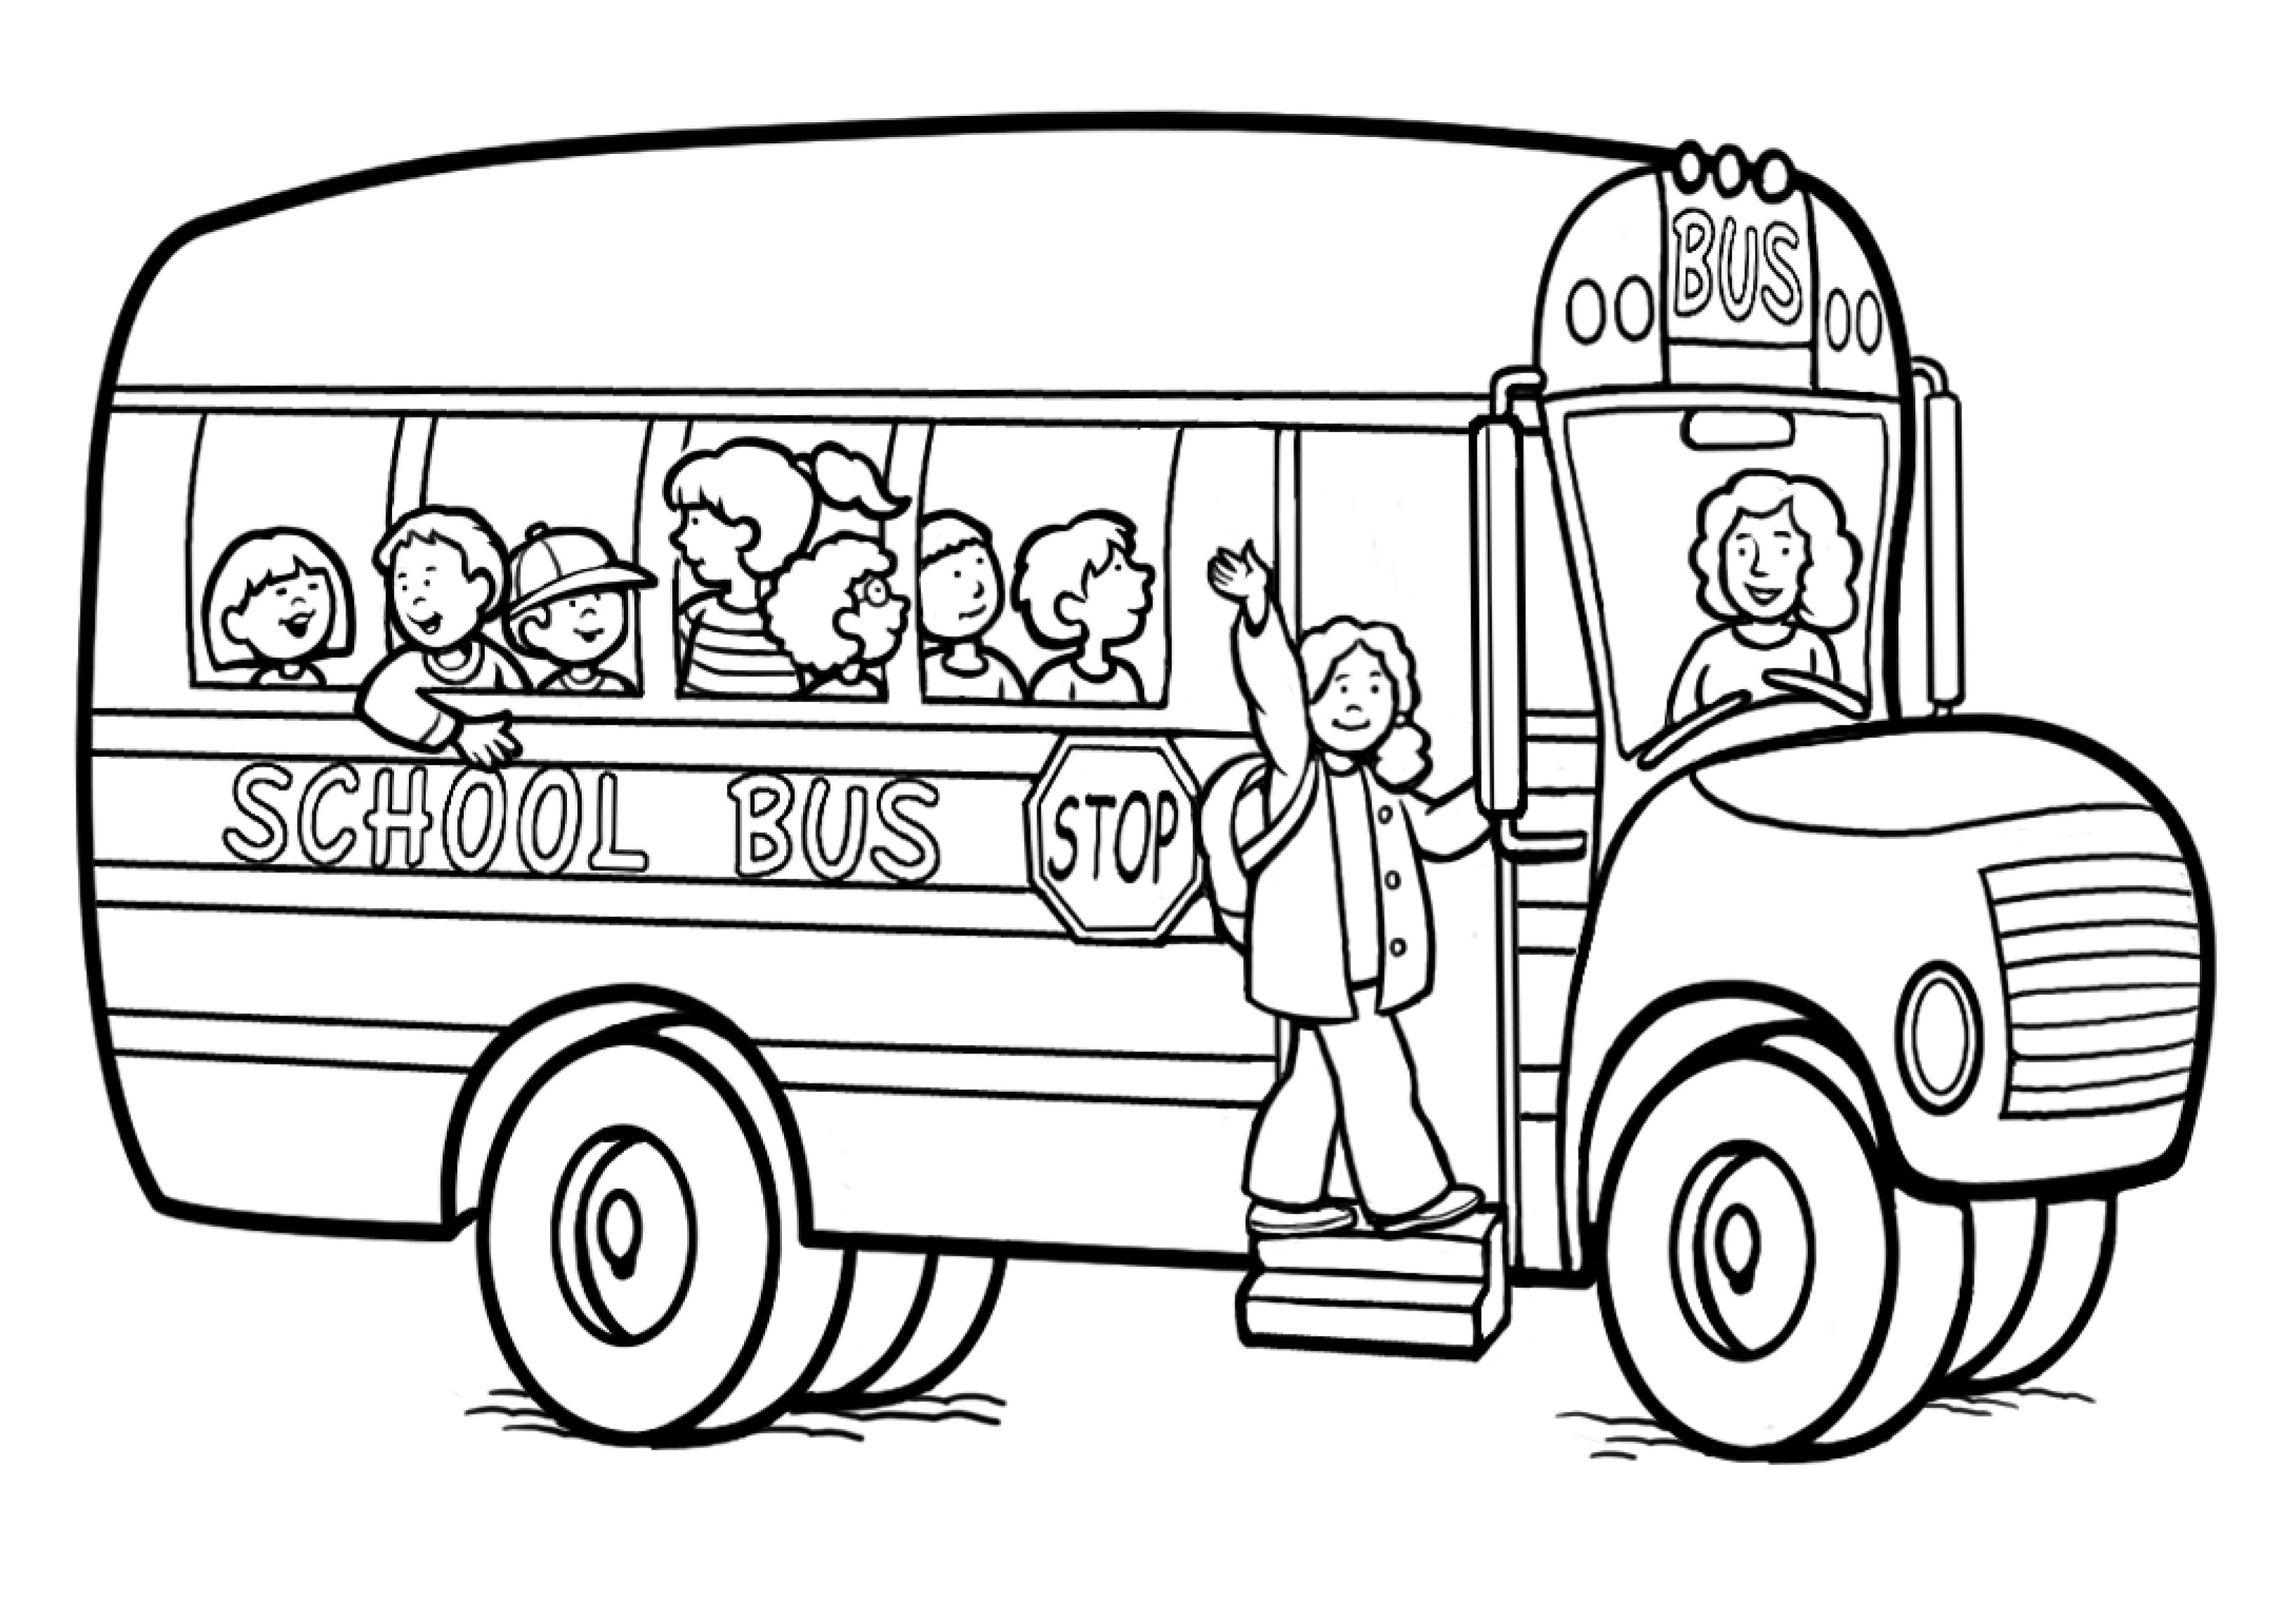 coloring pages bus - photo#3